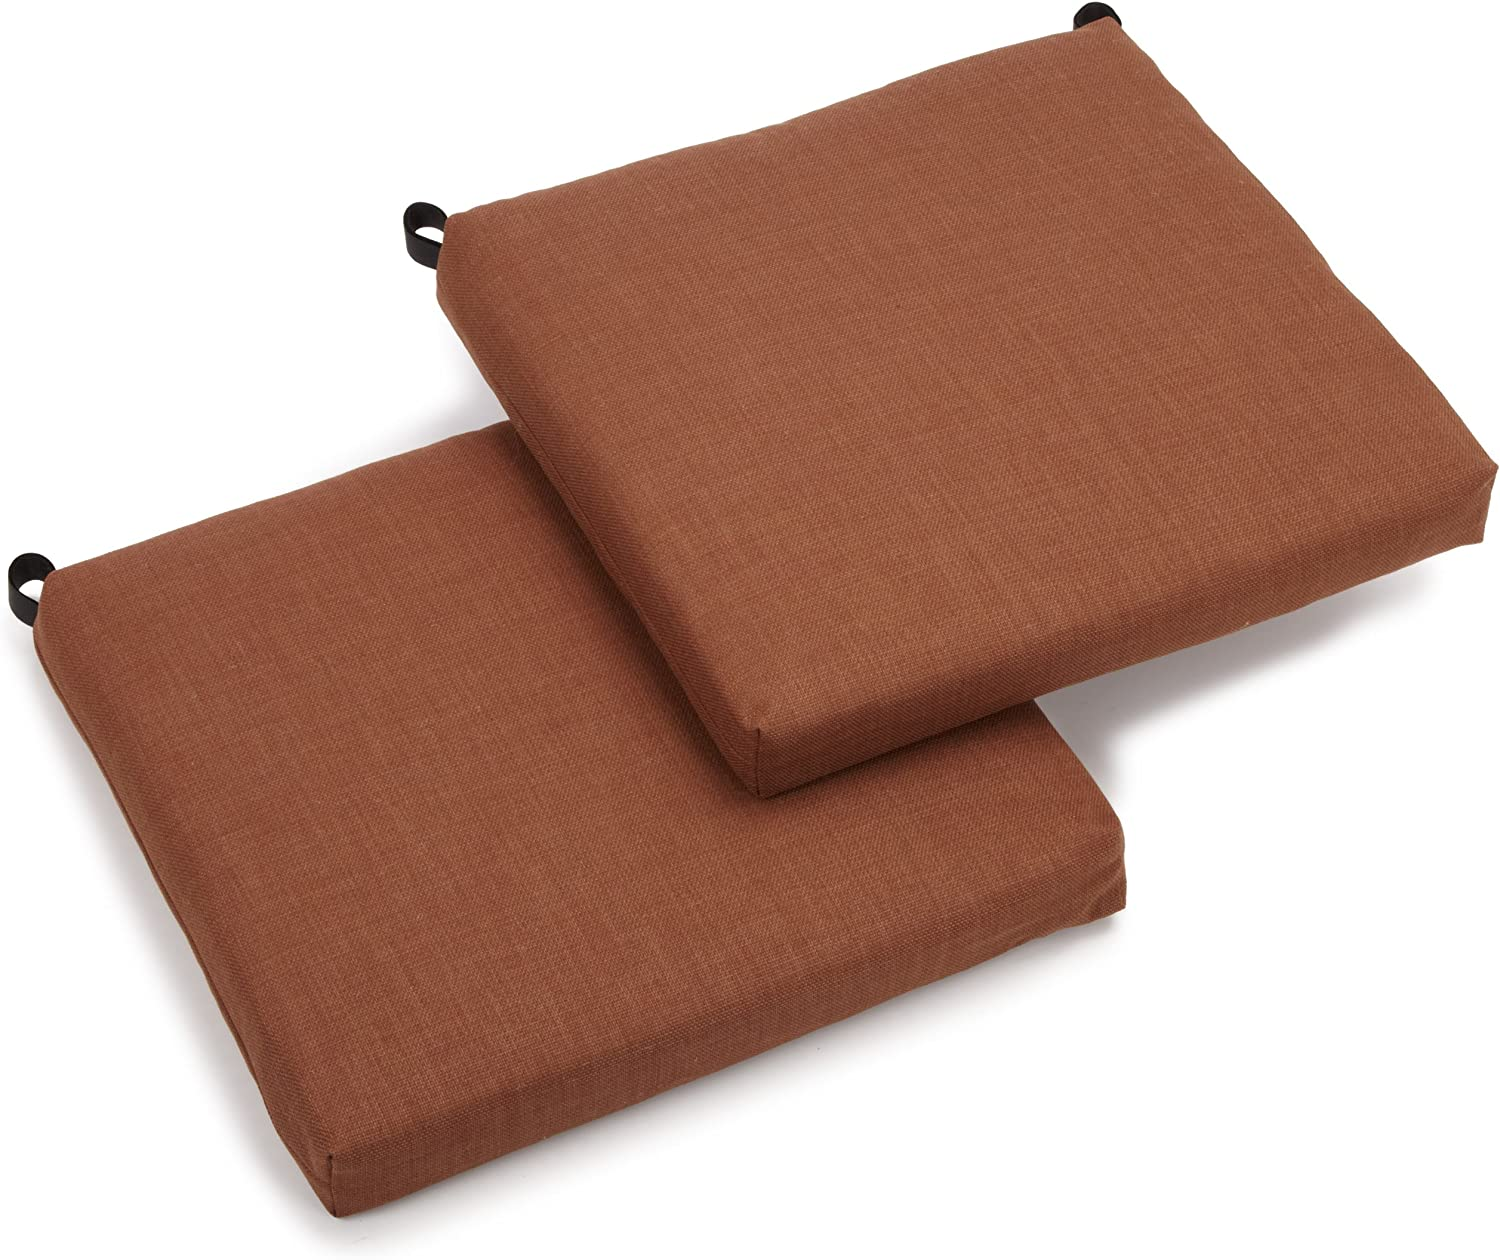 Blazing Needles Outdoor Spun Poly 19-Inch by 20-Inch by 3-1 2-Inch All Weather UV Resistant Zippered Cushions, Mocha, Set of 2